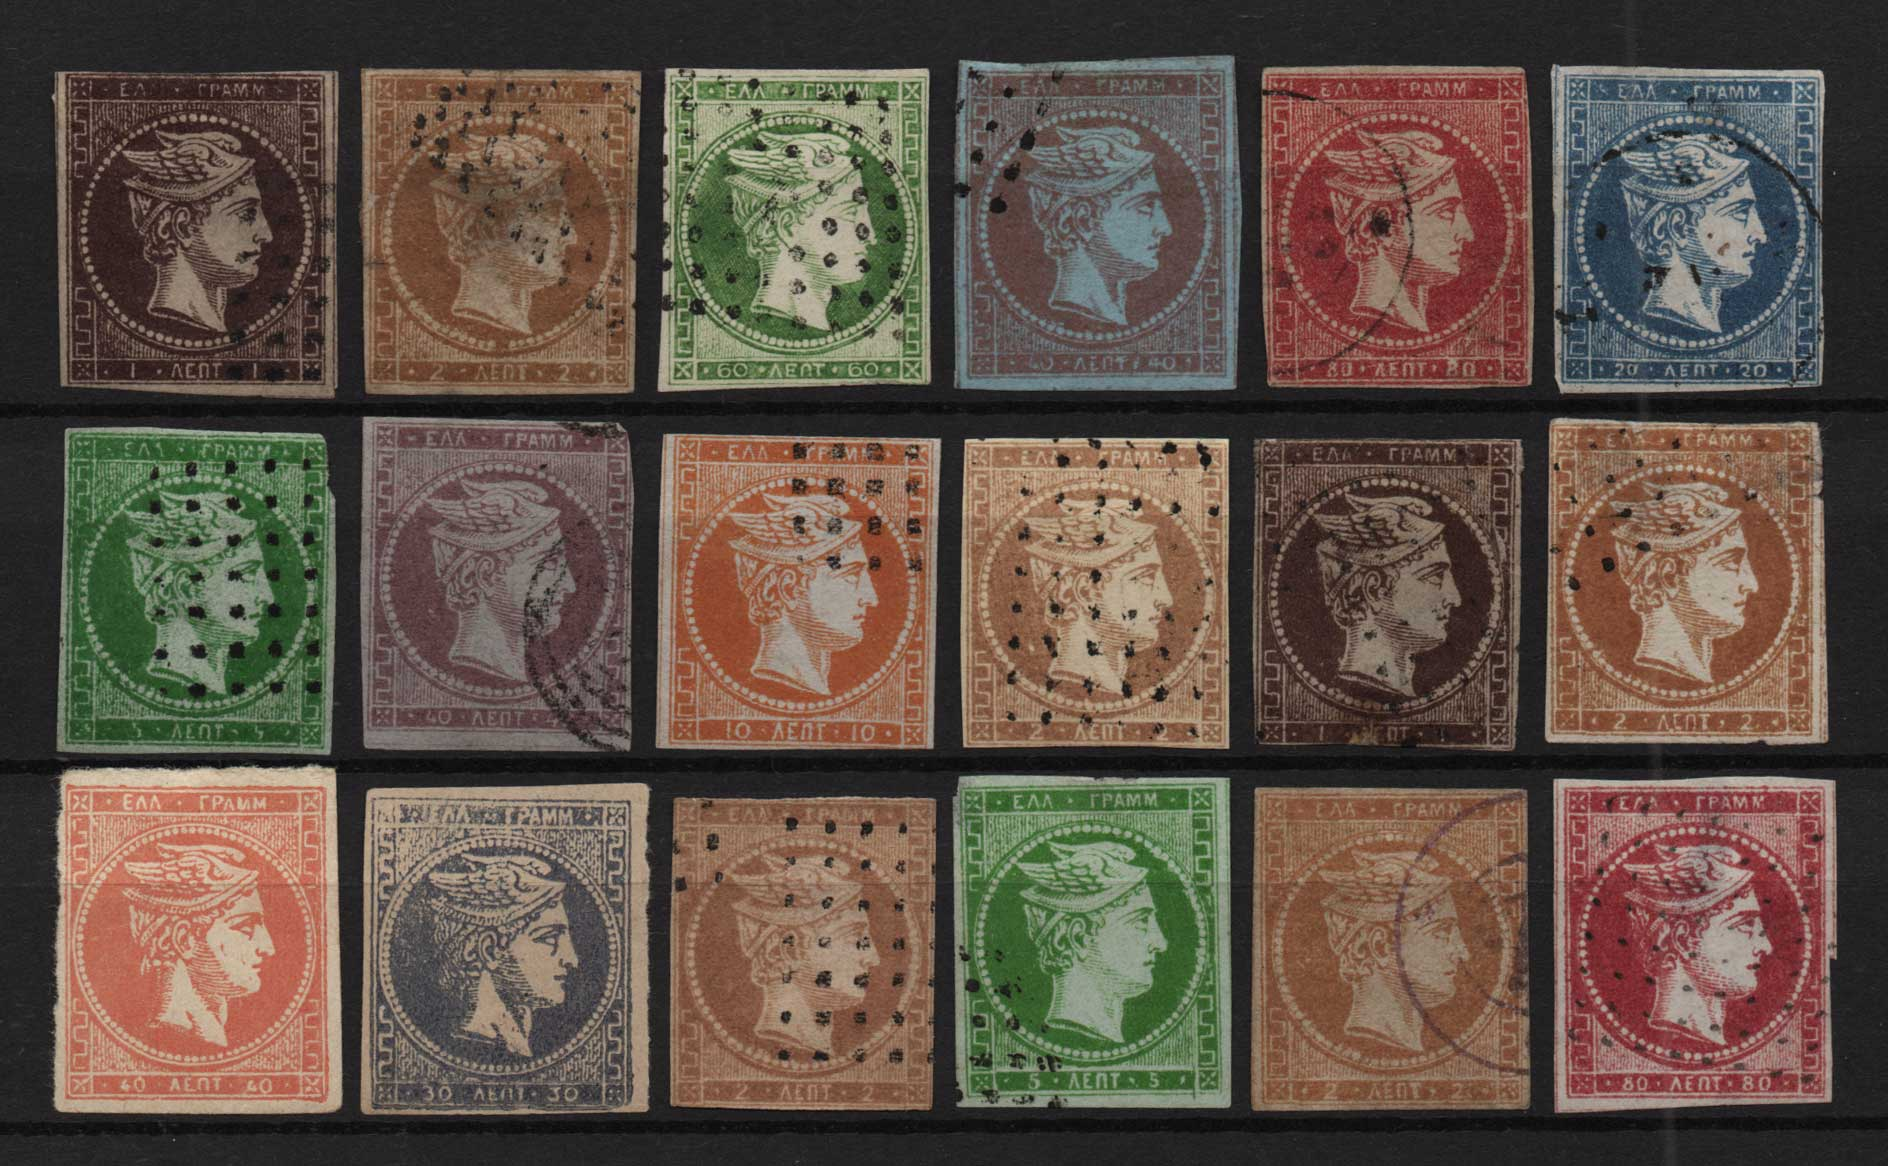 Lot 24 - forgery forgery -  Athens Auctions Public Auction 72 General Stamp Sale